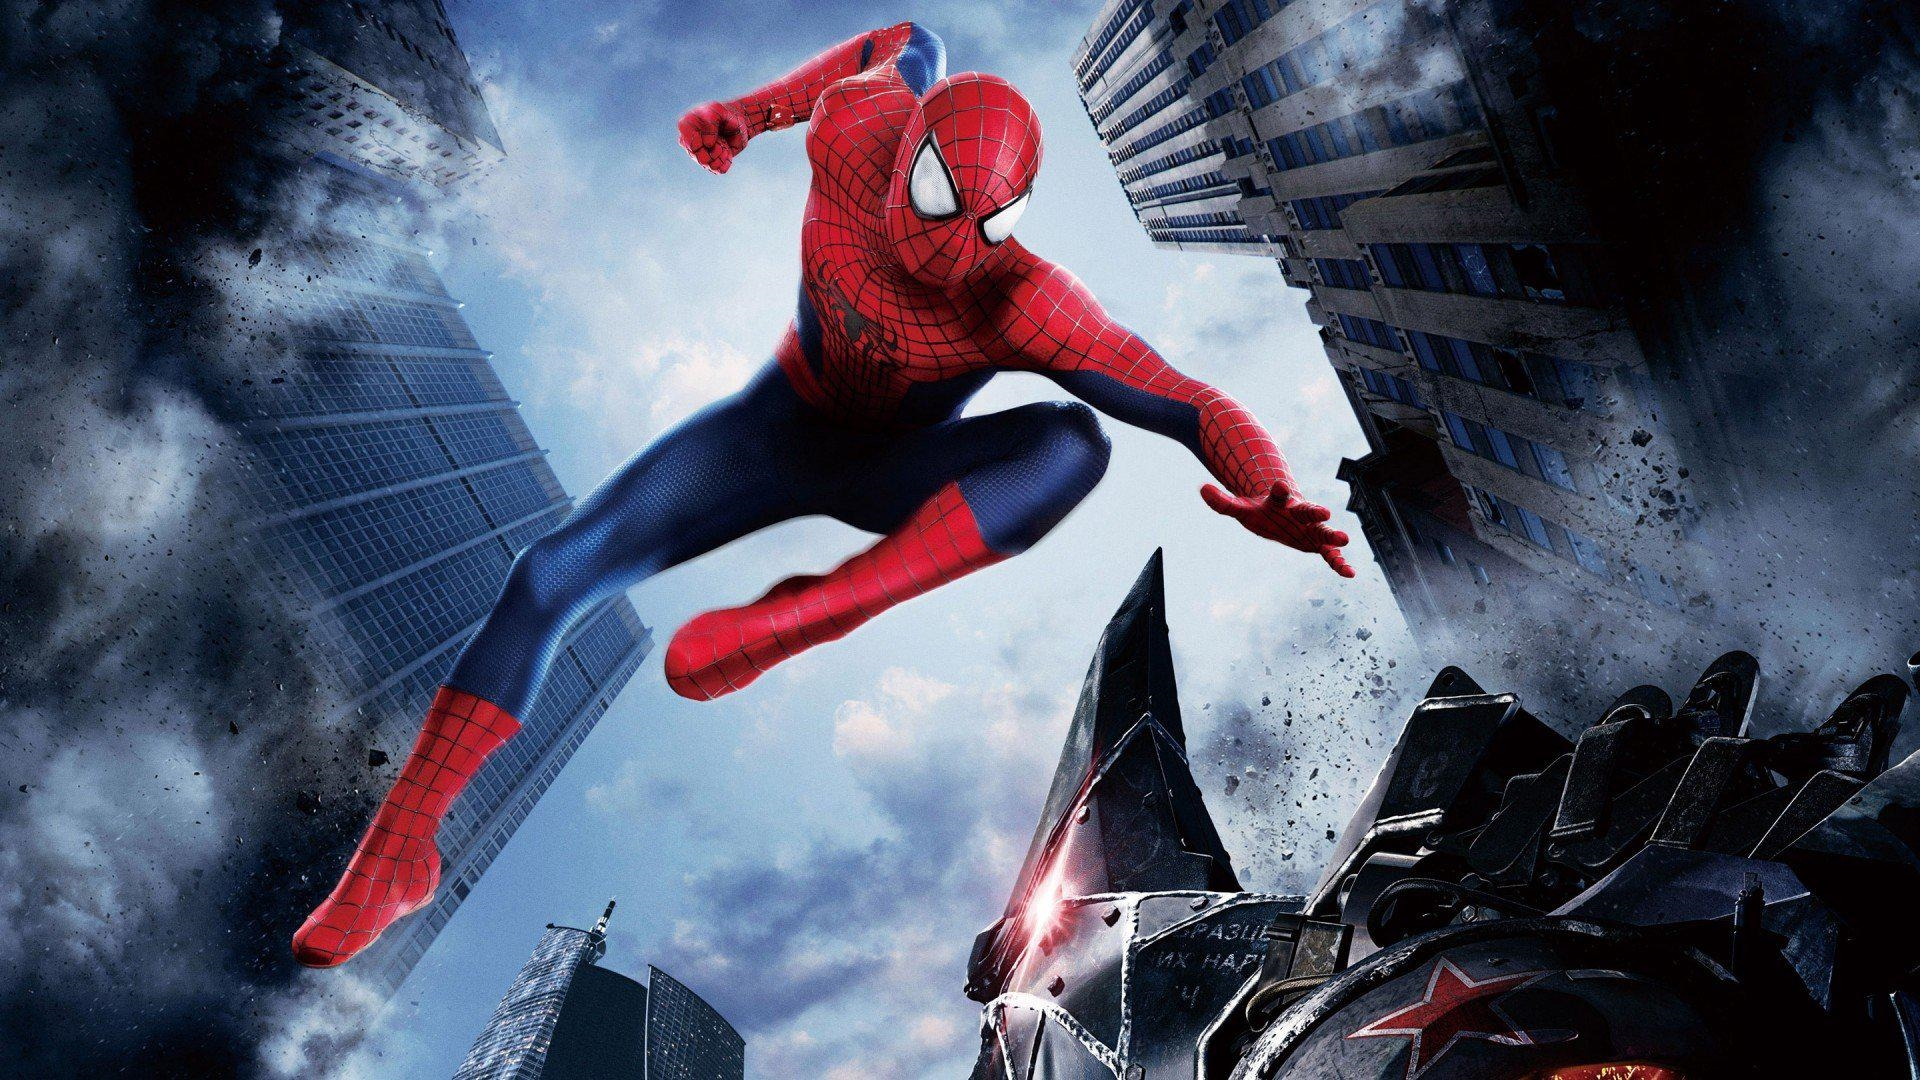 amazing spider man 2 action adventure marvel comics